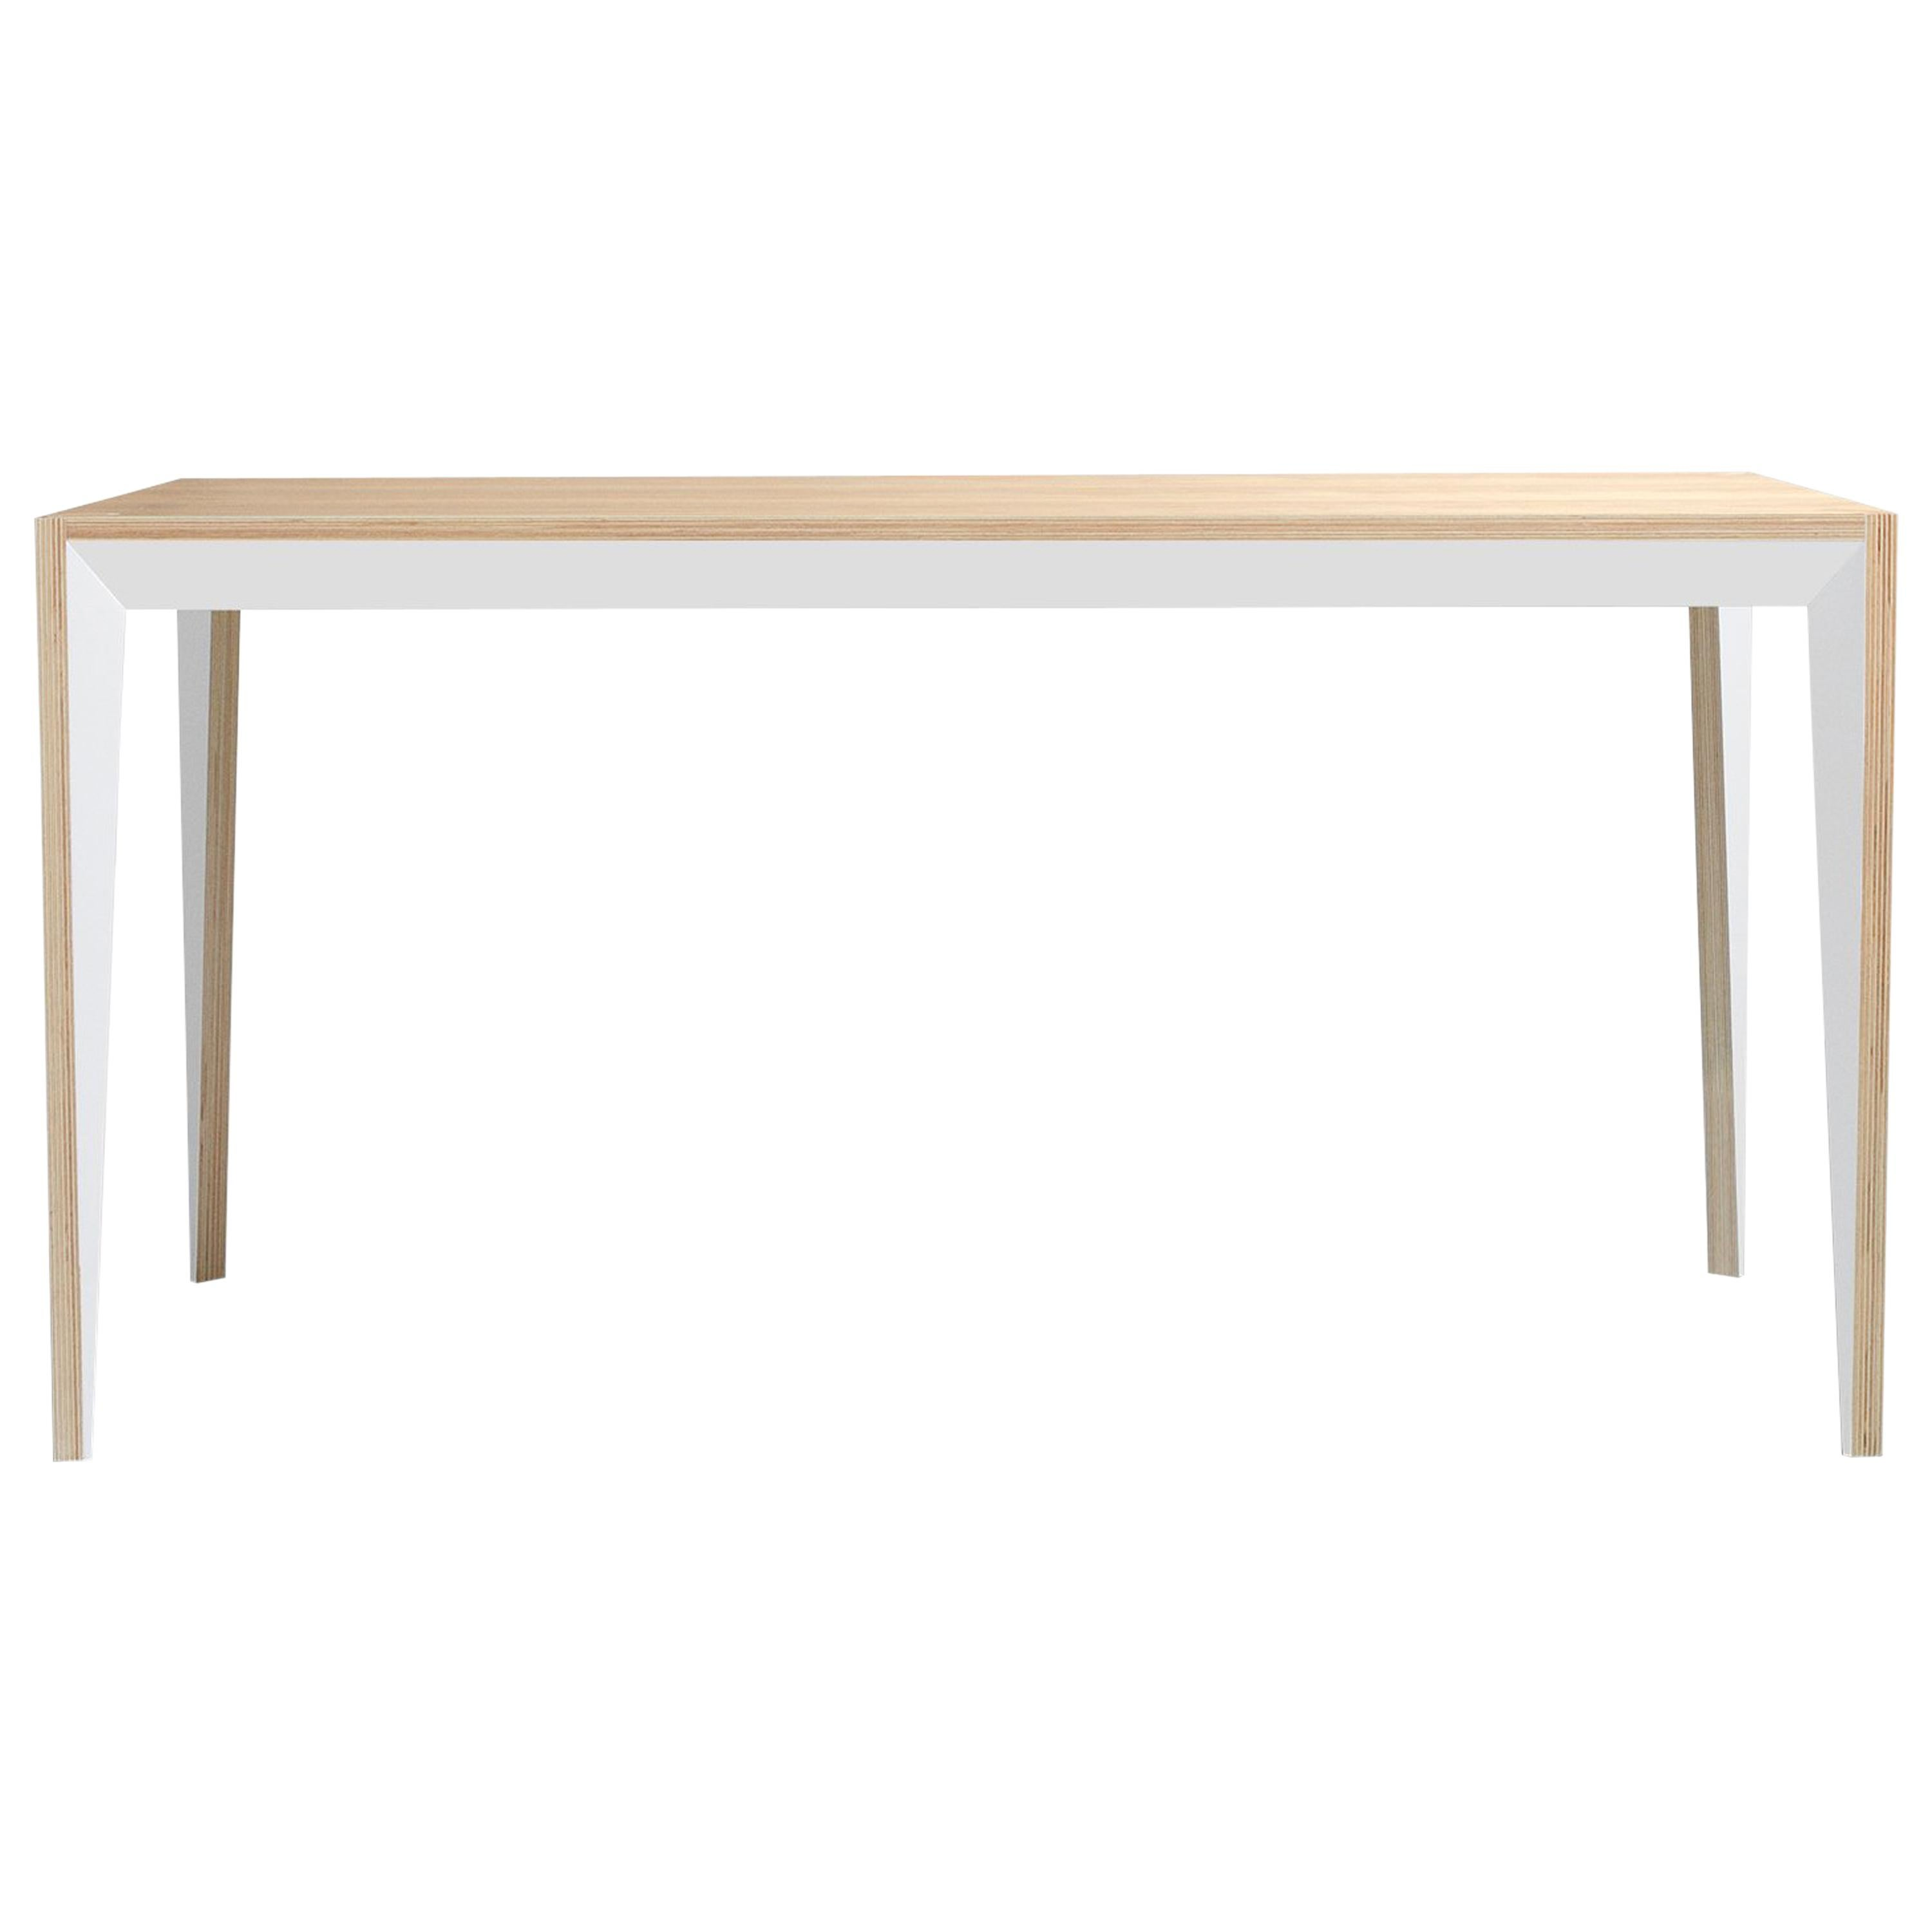 Oak White MiMi Table by Miduny, Made in Italy